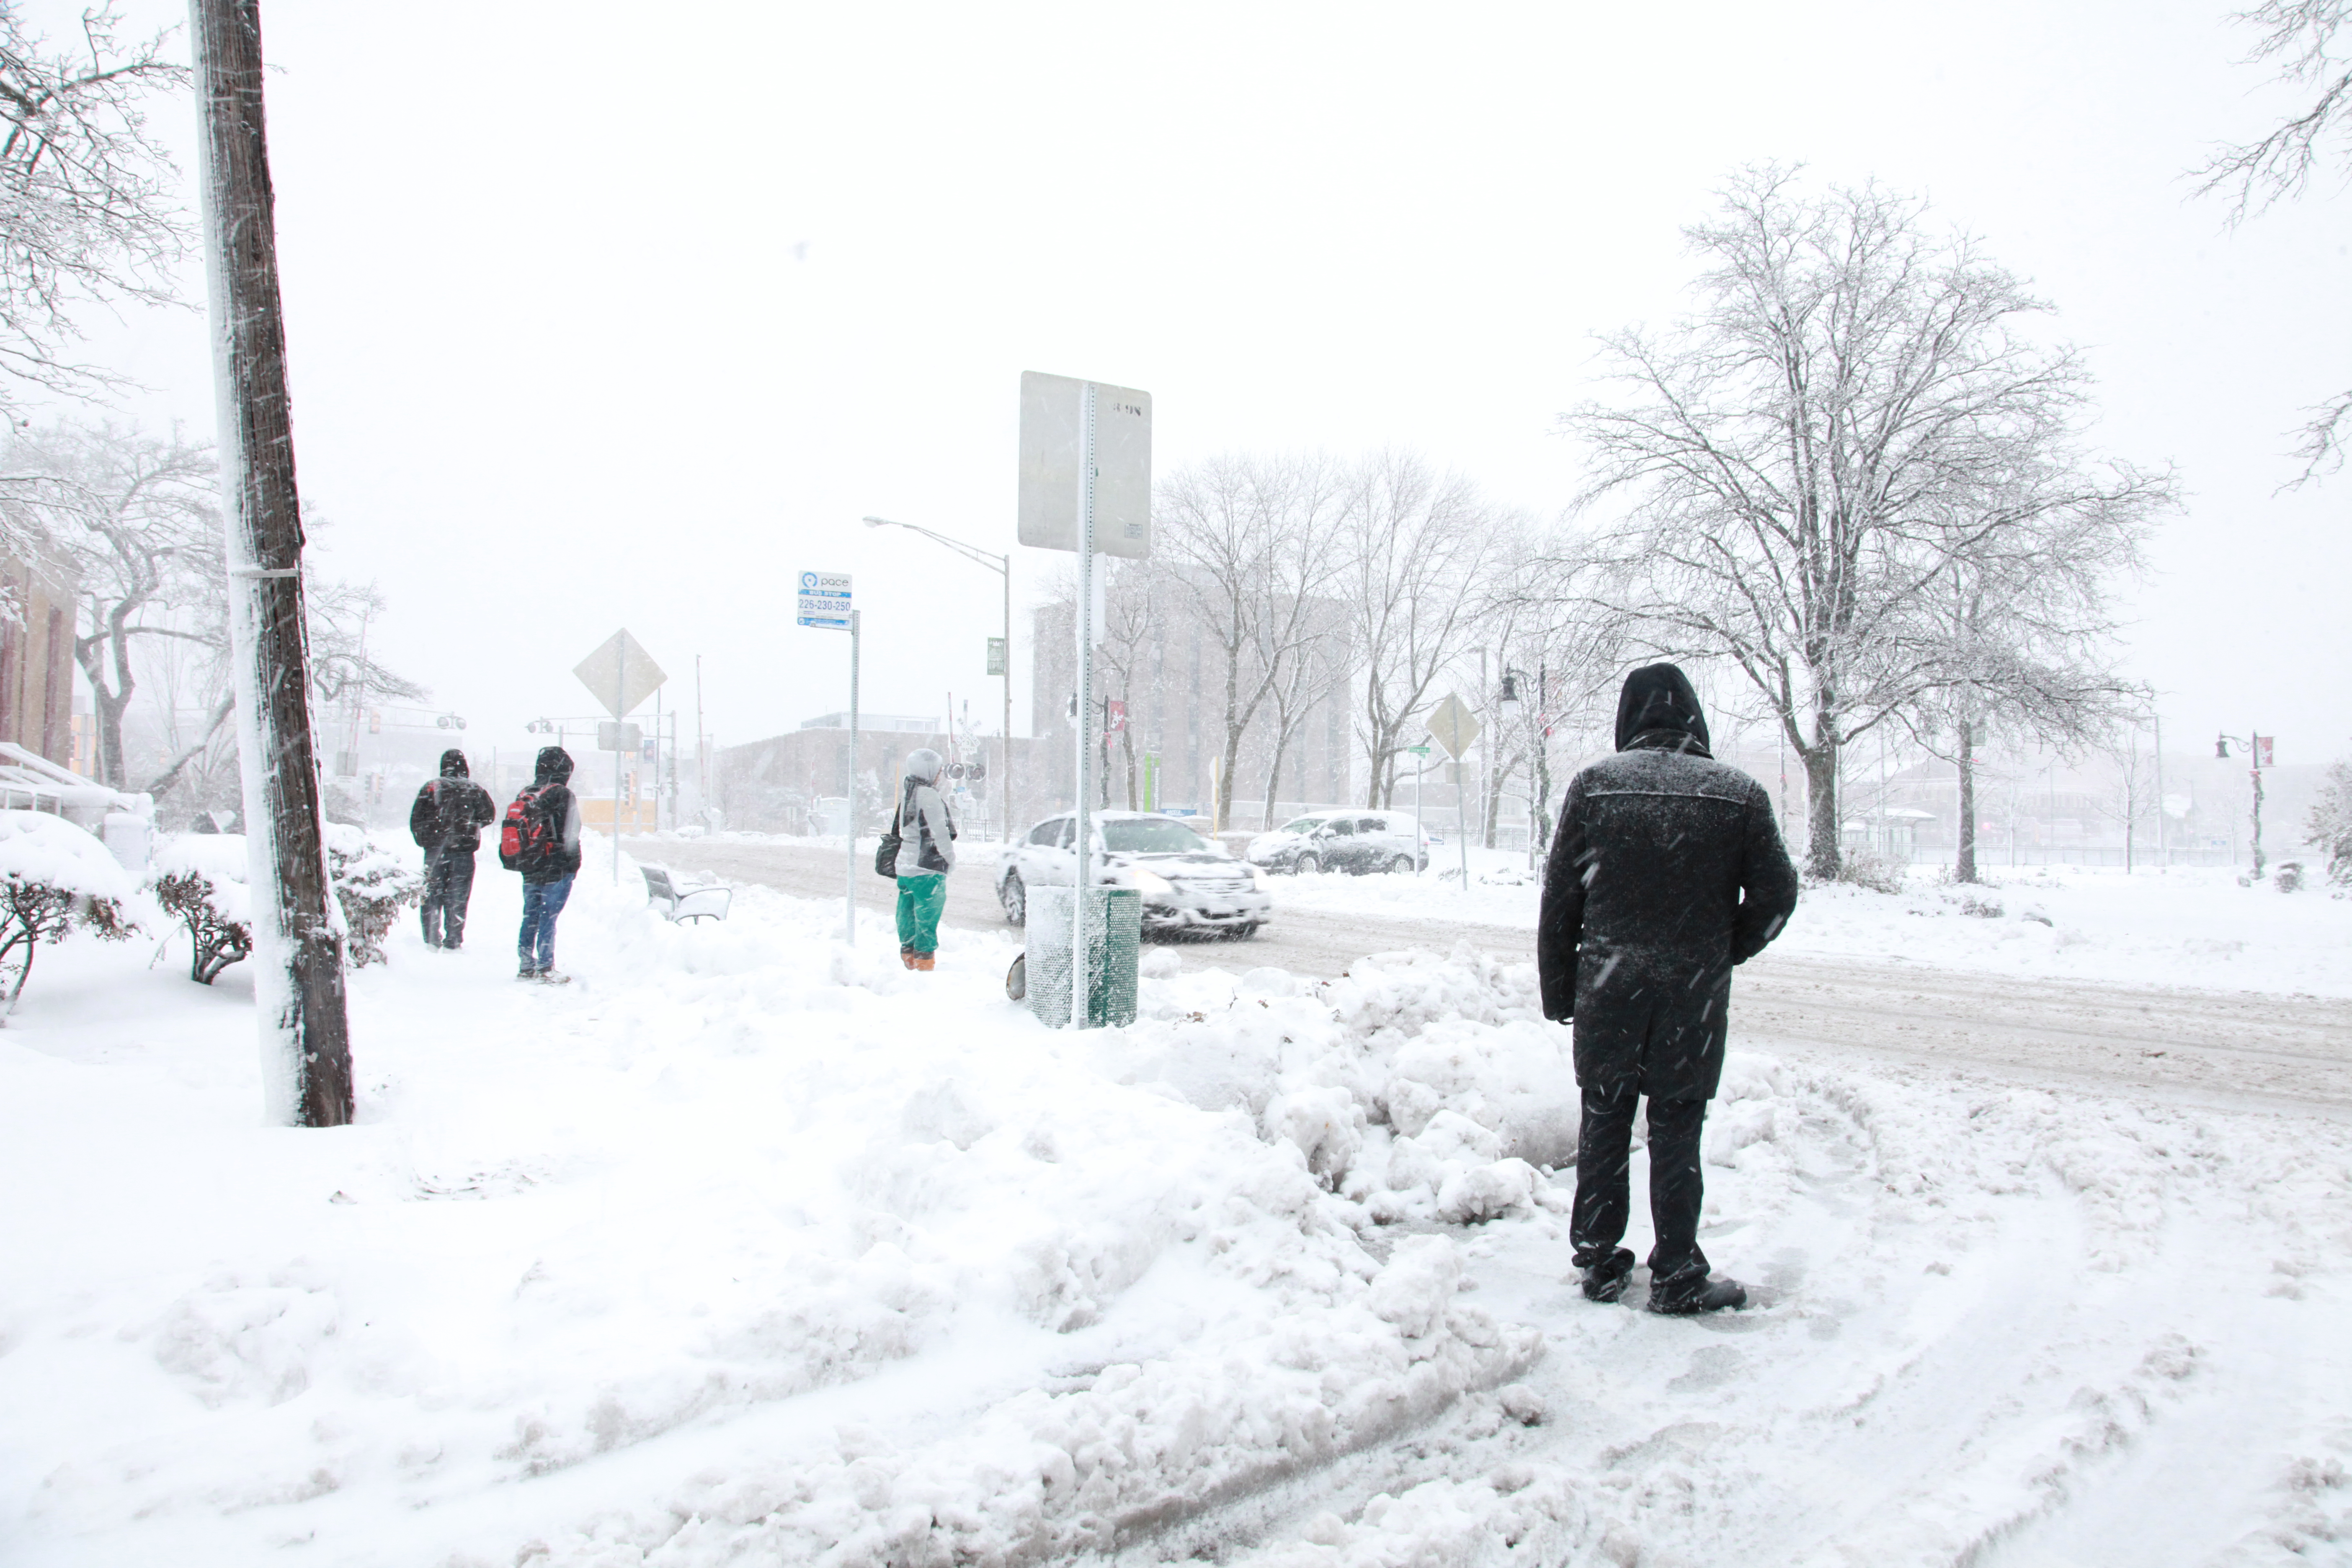 Blizzard Dumps Nearly 8 Inches On Area | Journal & Topics Media Group